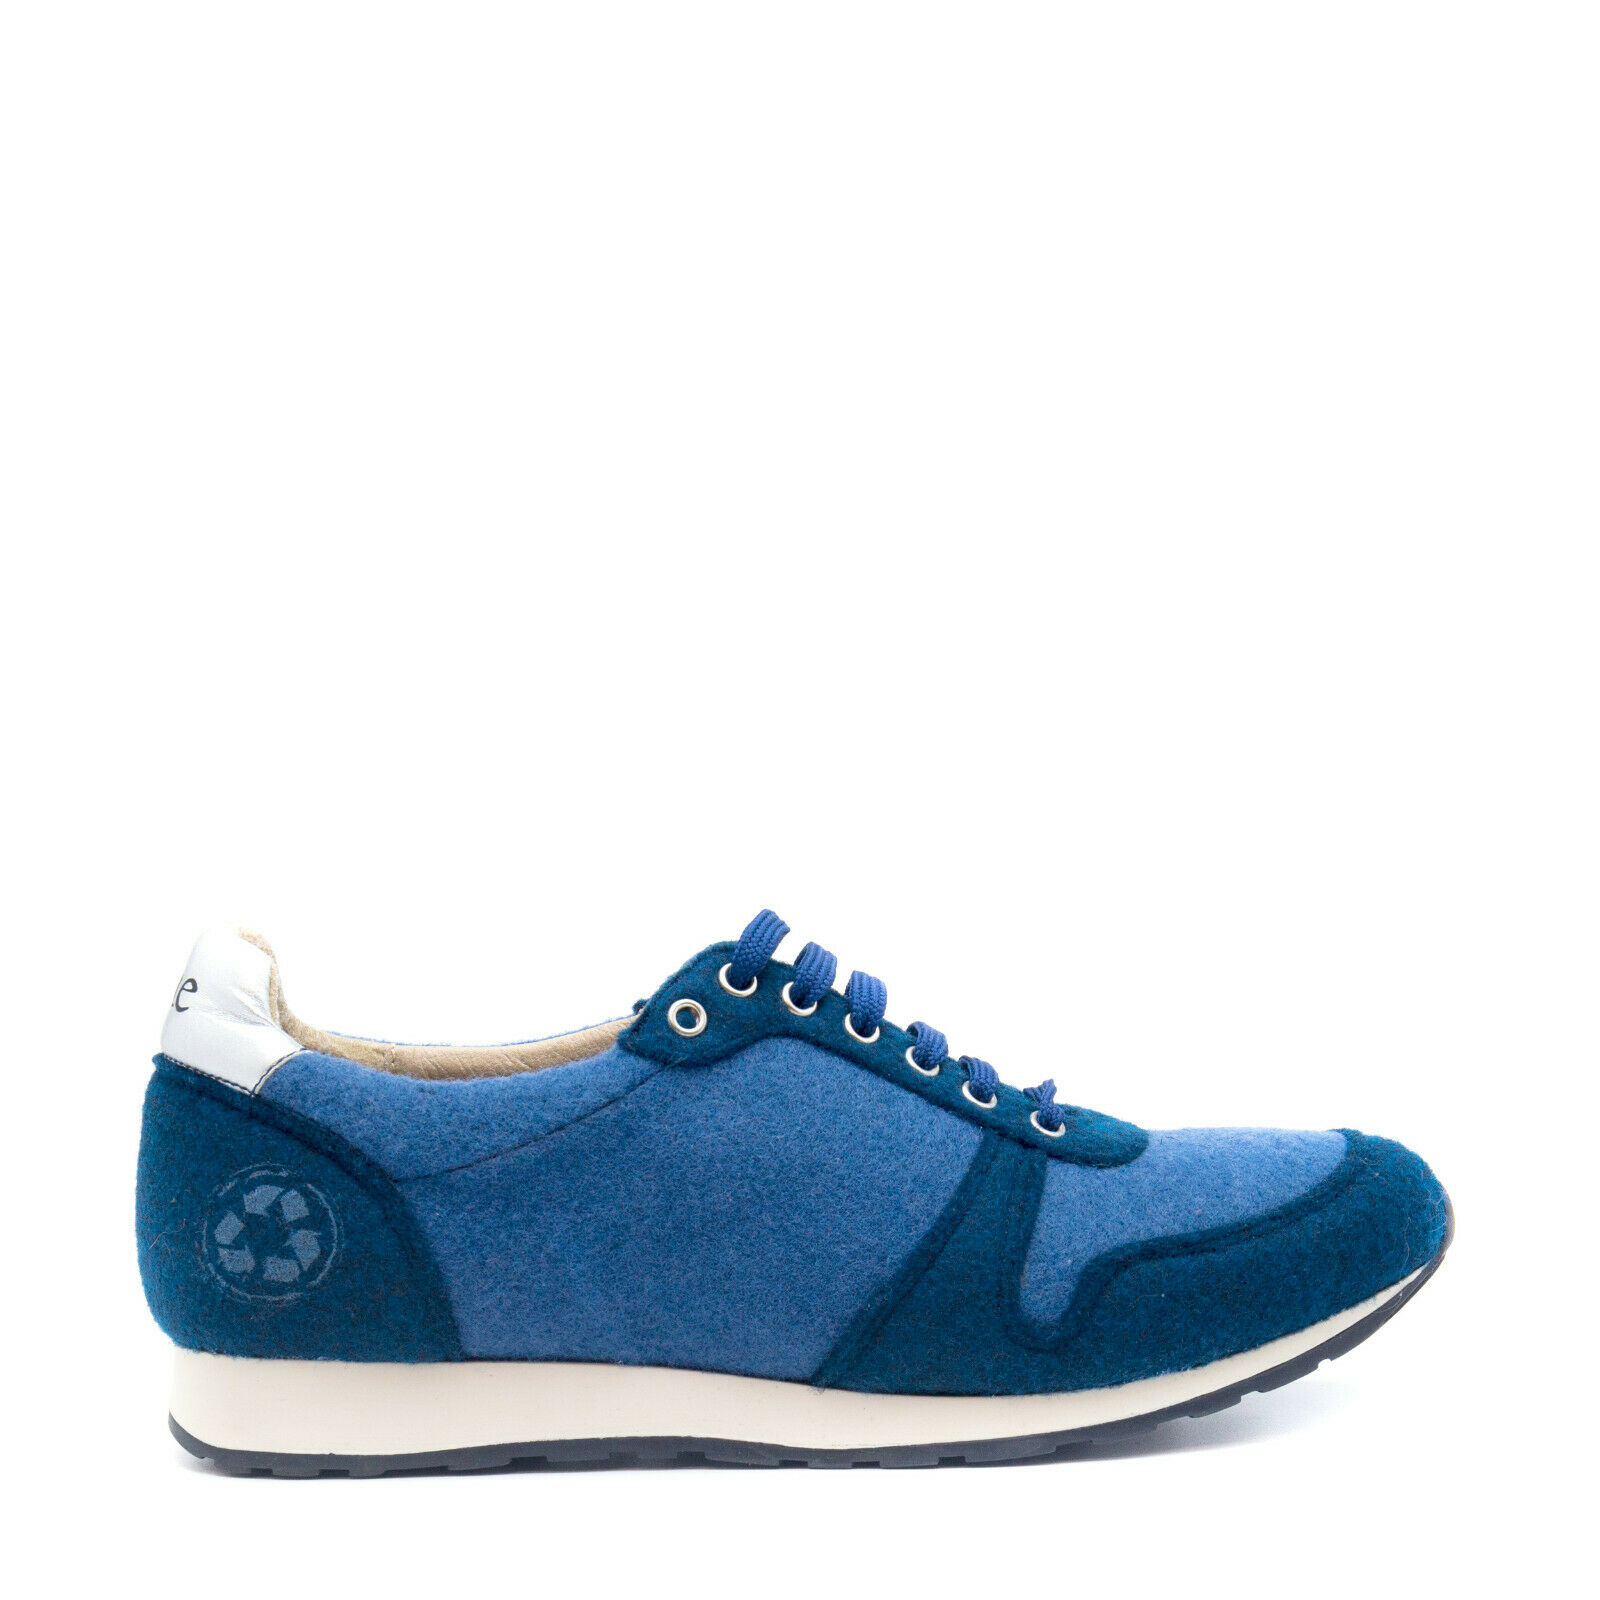 Vegan Low-Top sneaker Lace-Up on recycled PET fabric upper with ultrasoft sole